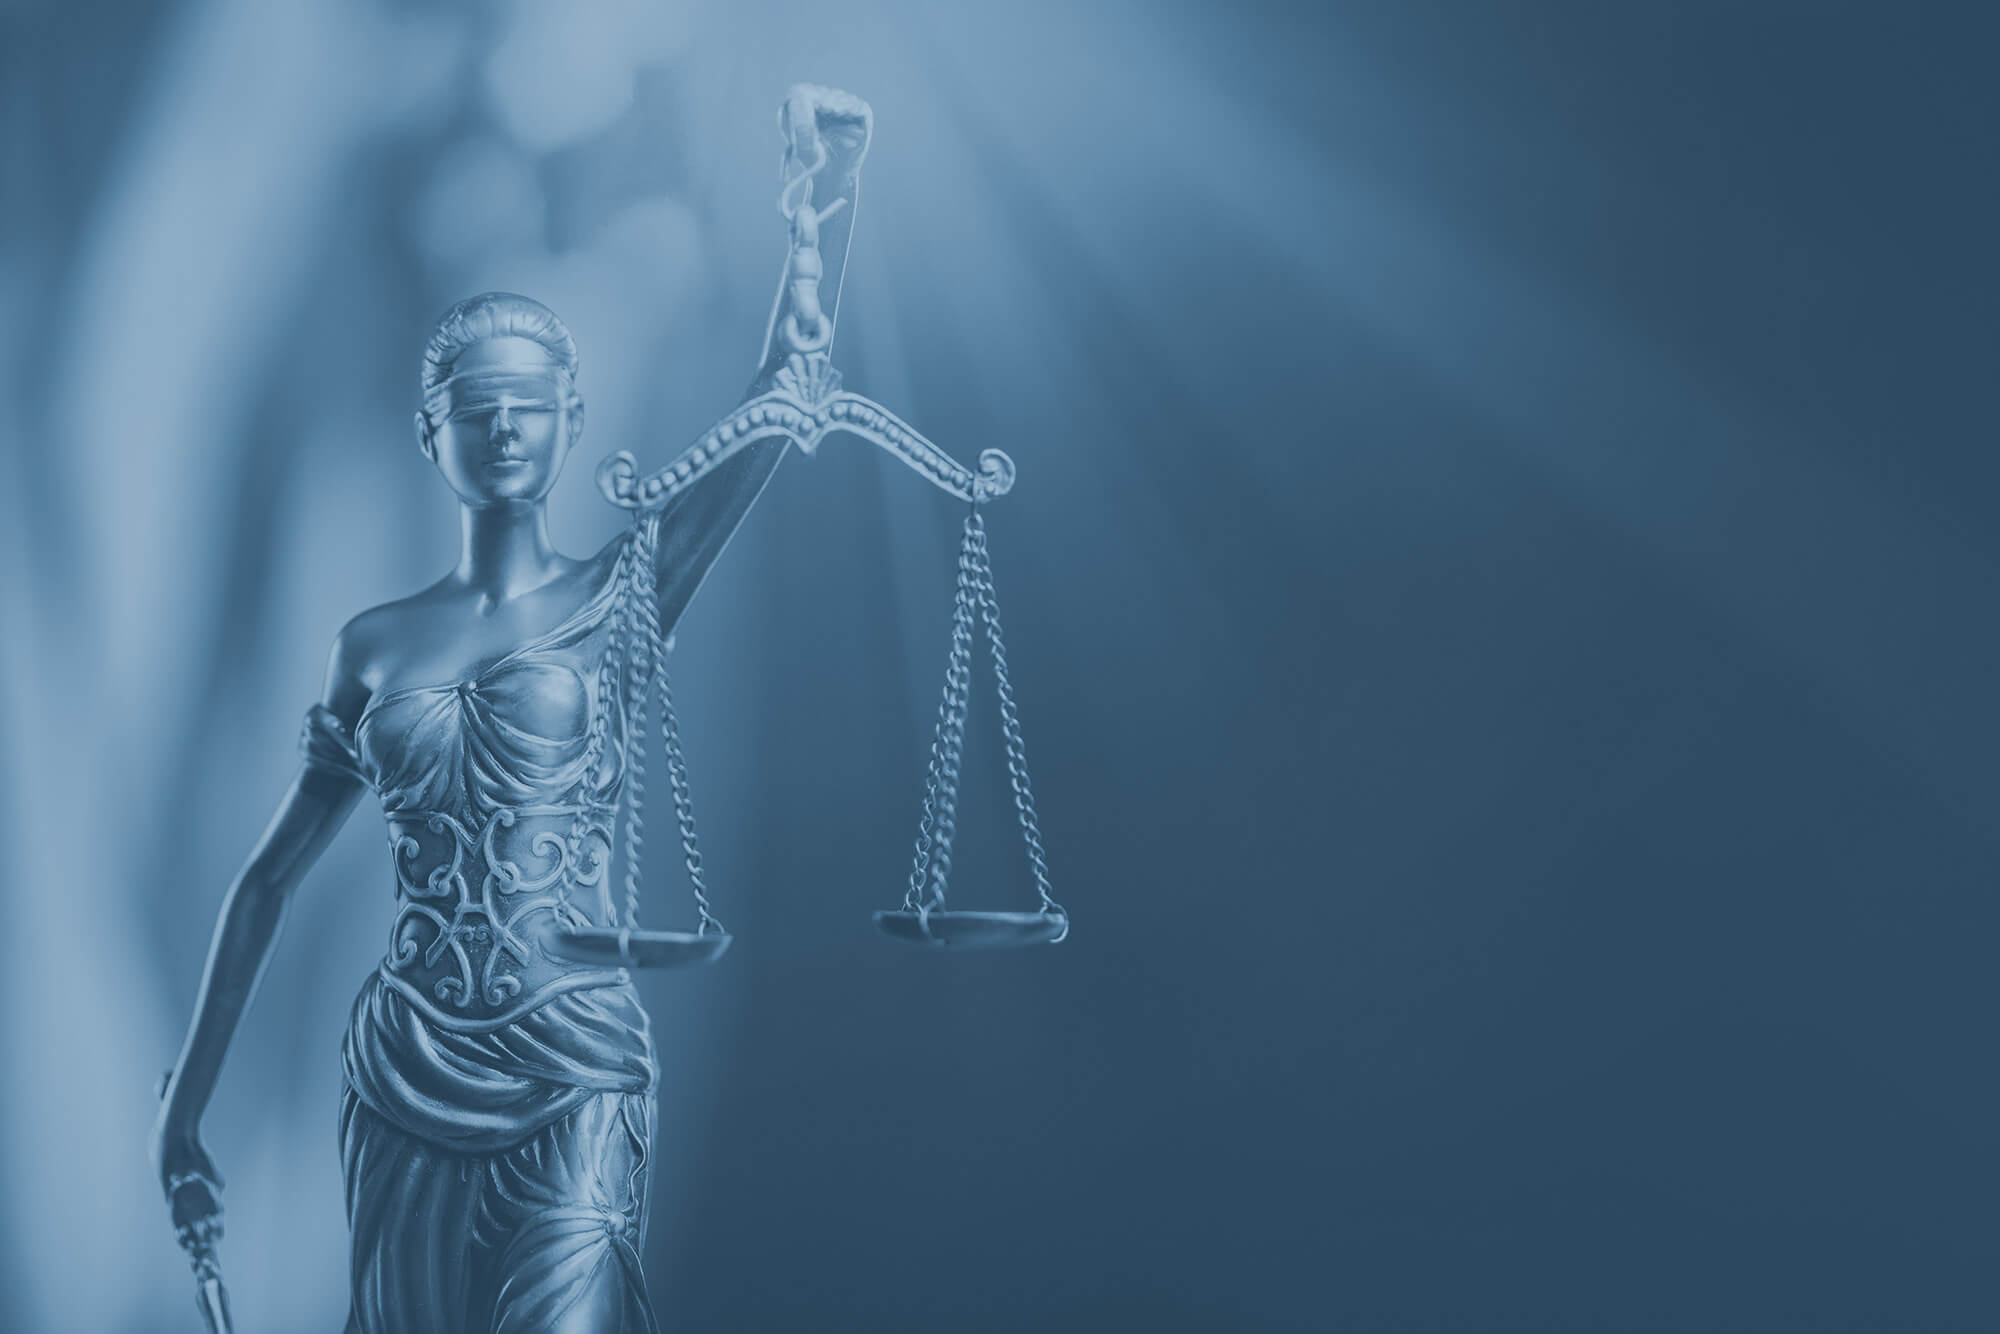 blue filter lady justice